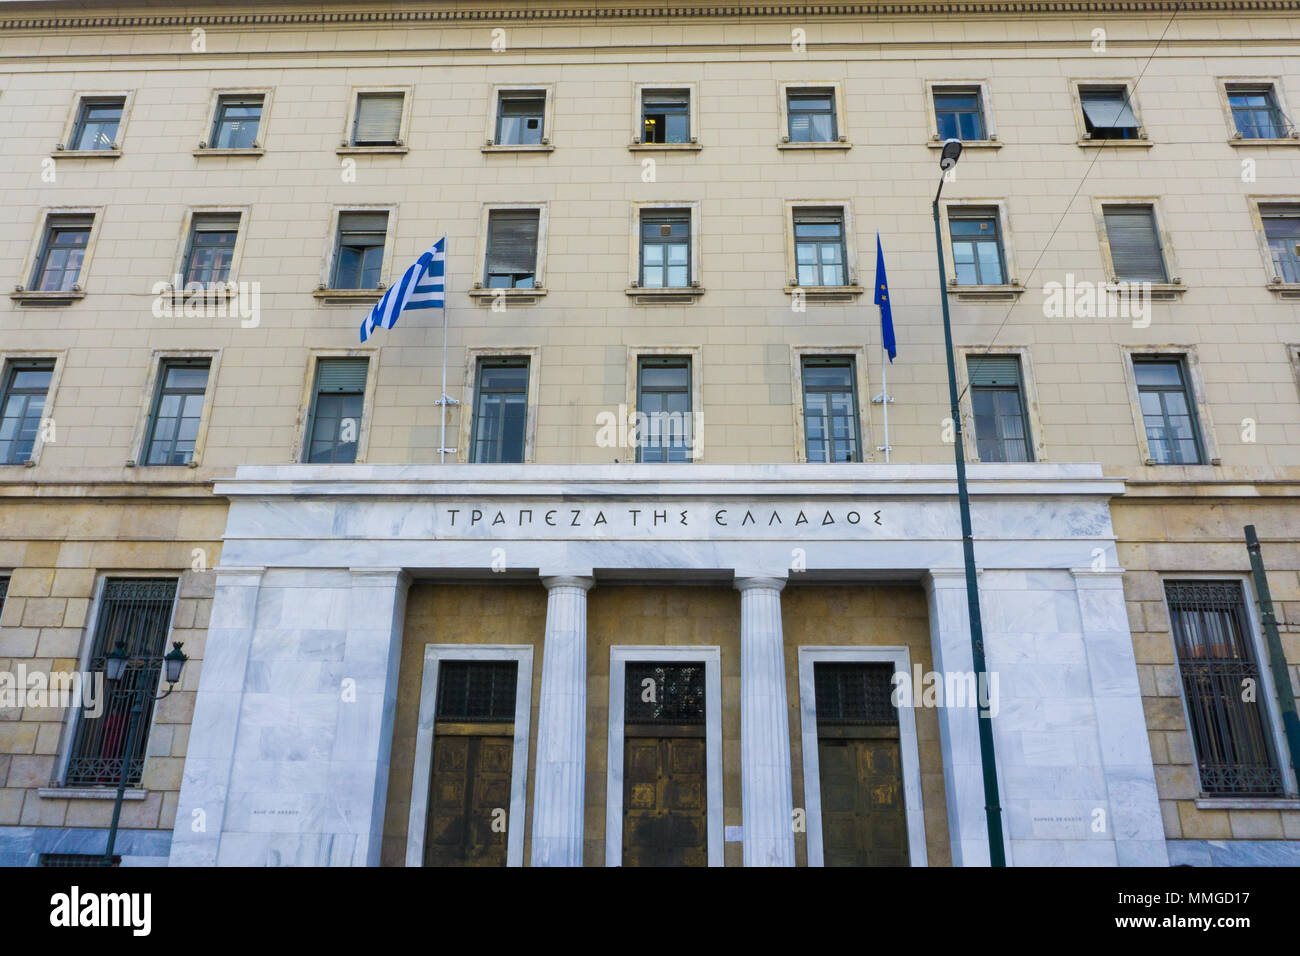 National Bank of Greece building in Athens - Stock Image